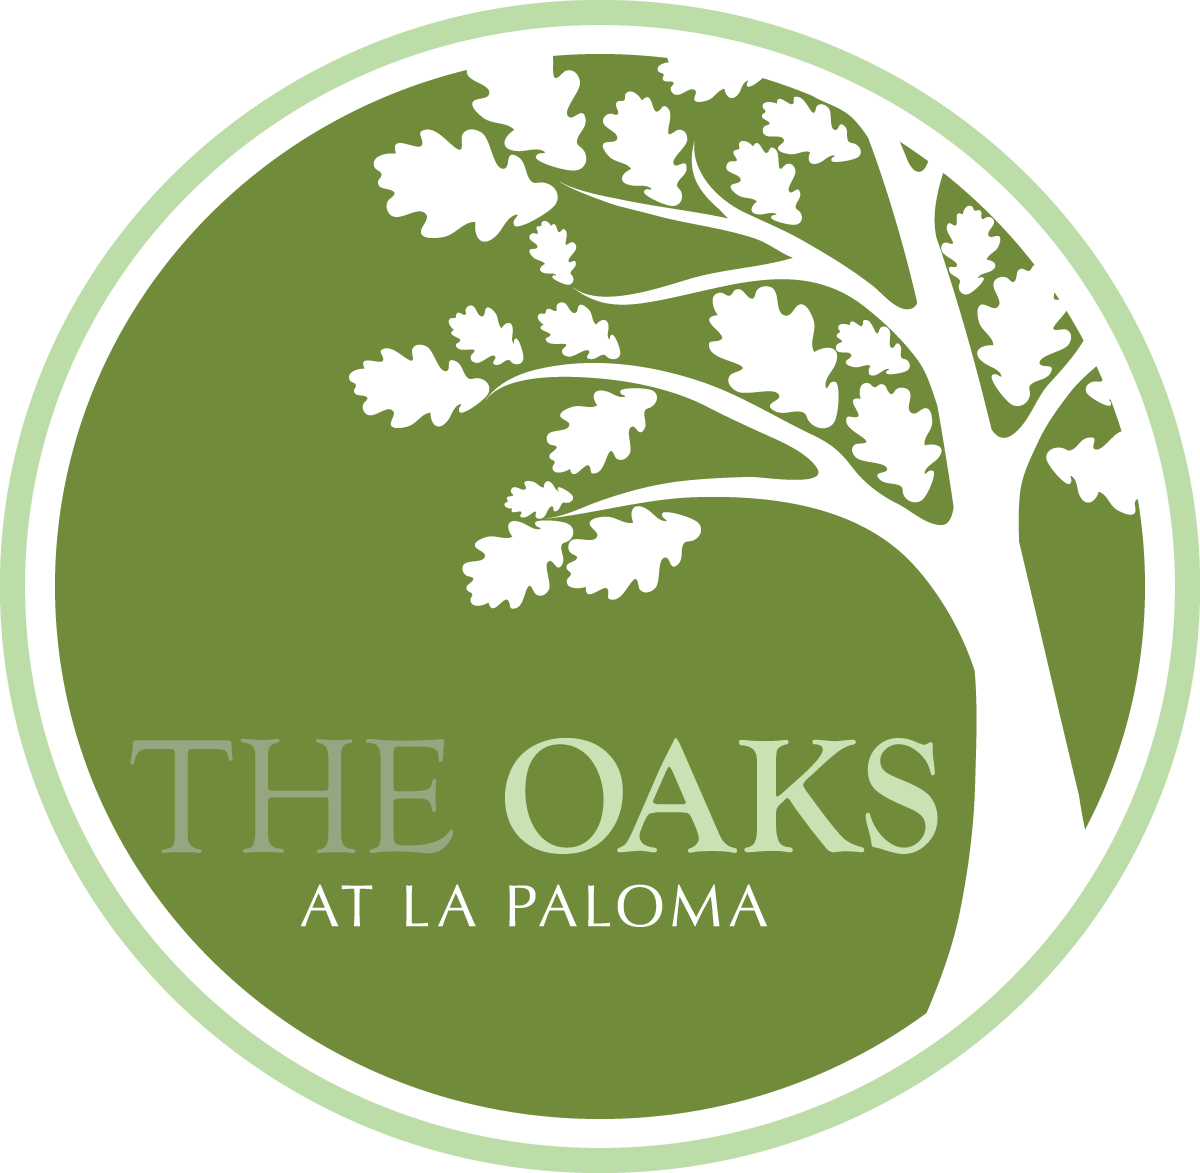 The Oaks at La Paloma